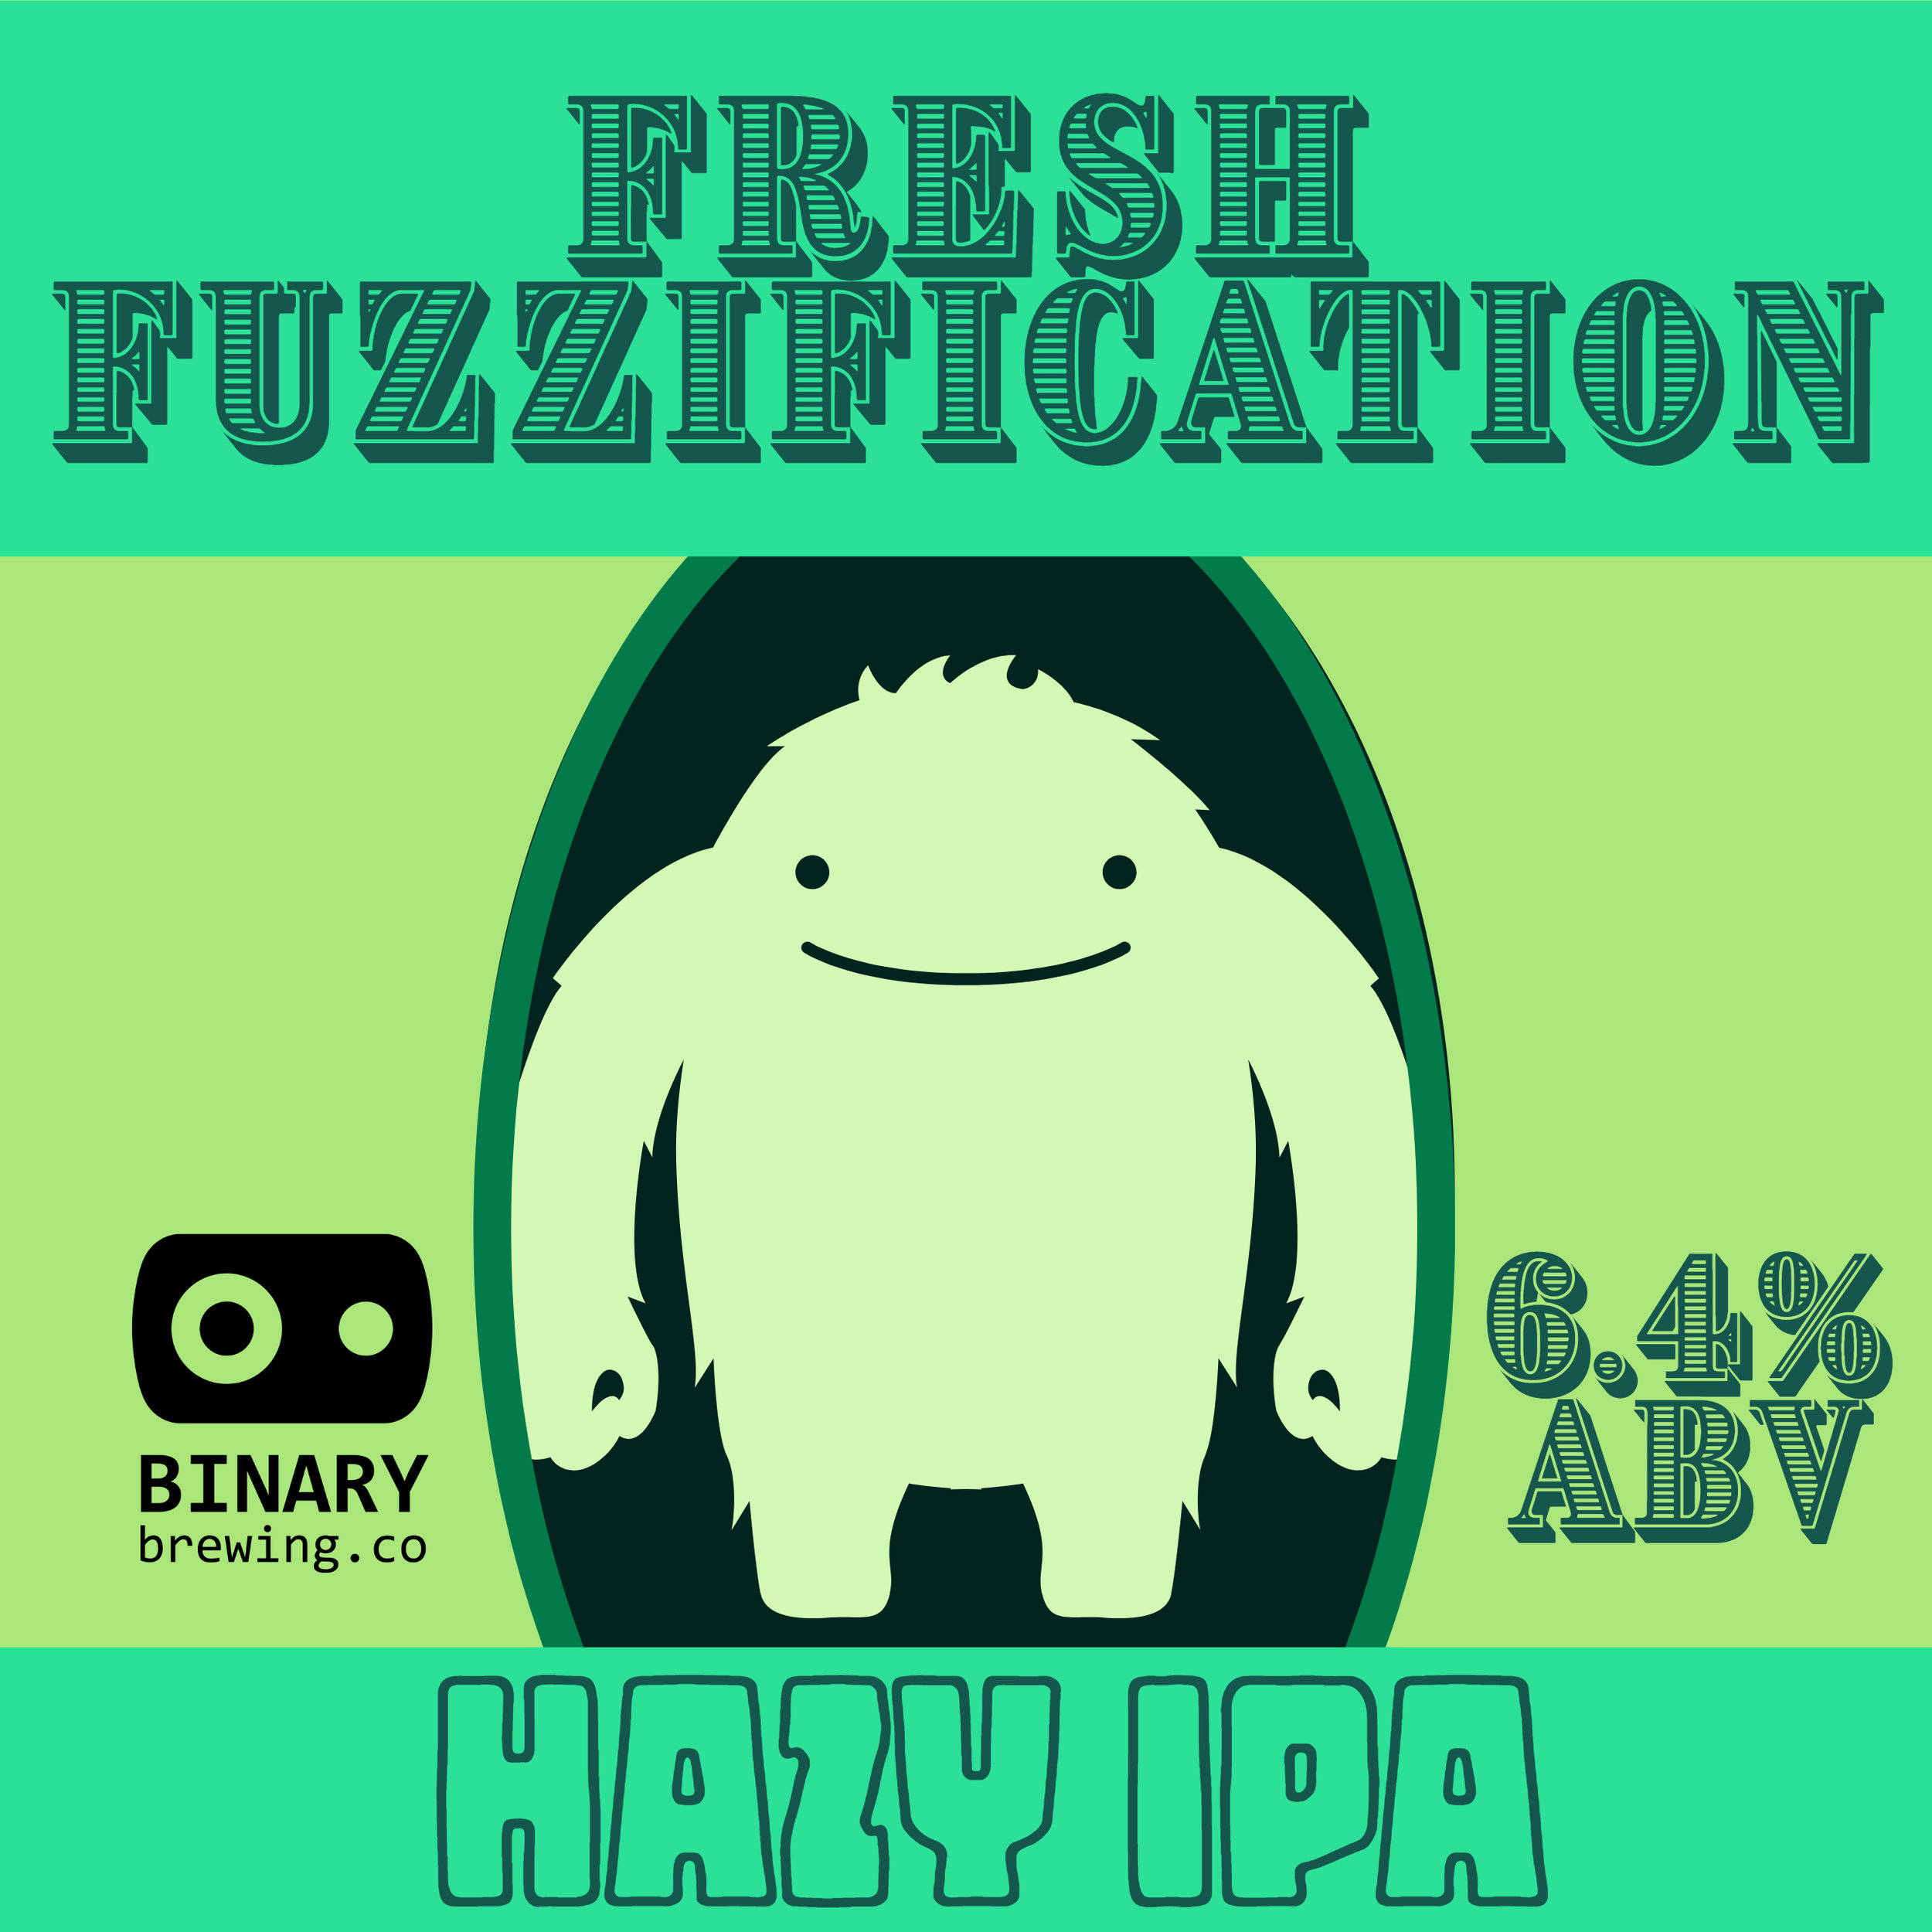 BinaryBrewing.co made a tweek to their beloved Fuzzy Logic and threw in some Fresh Nugget Hops creating a even Fuzzier experience.